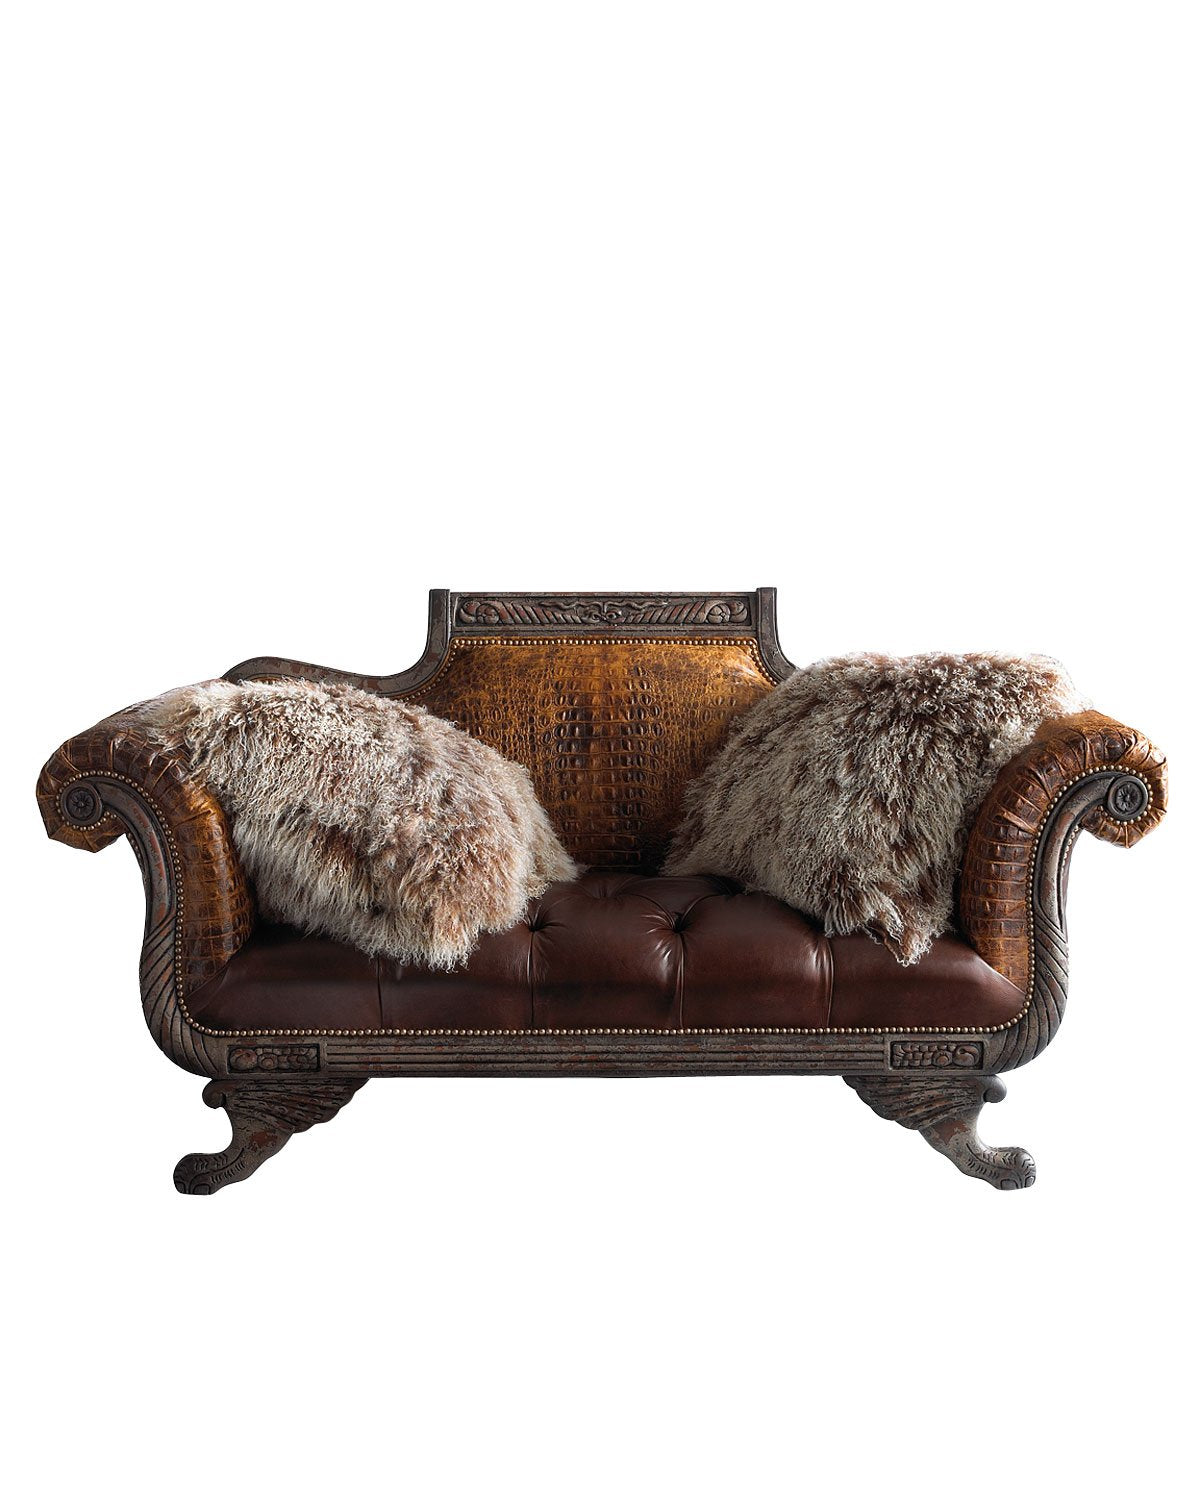 Leather Settee with Shaggy accents - Old Hickory Tannery